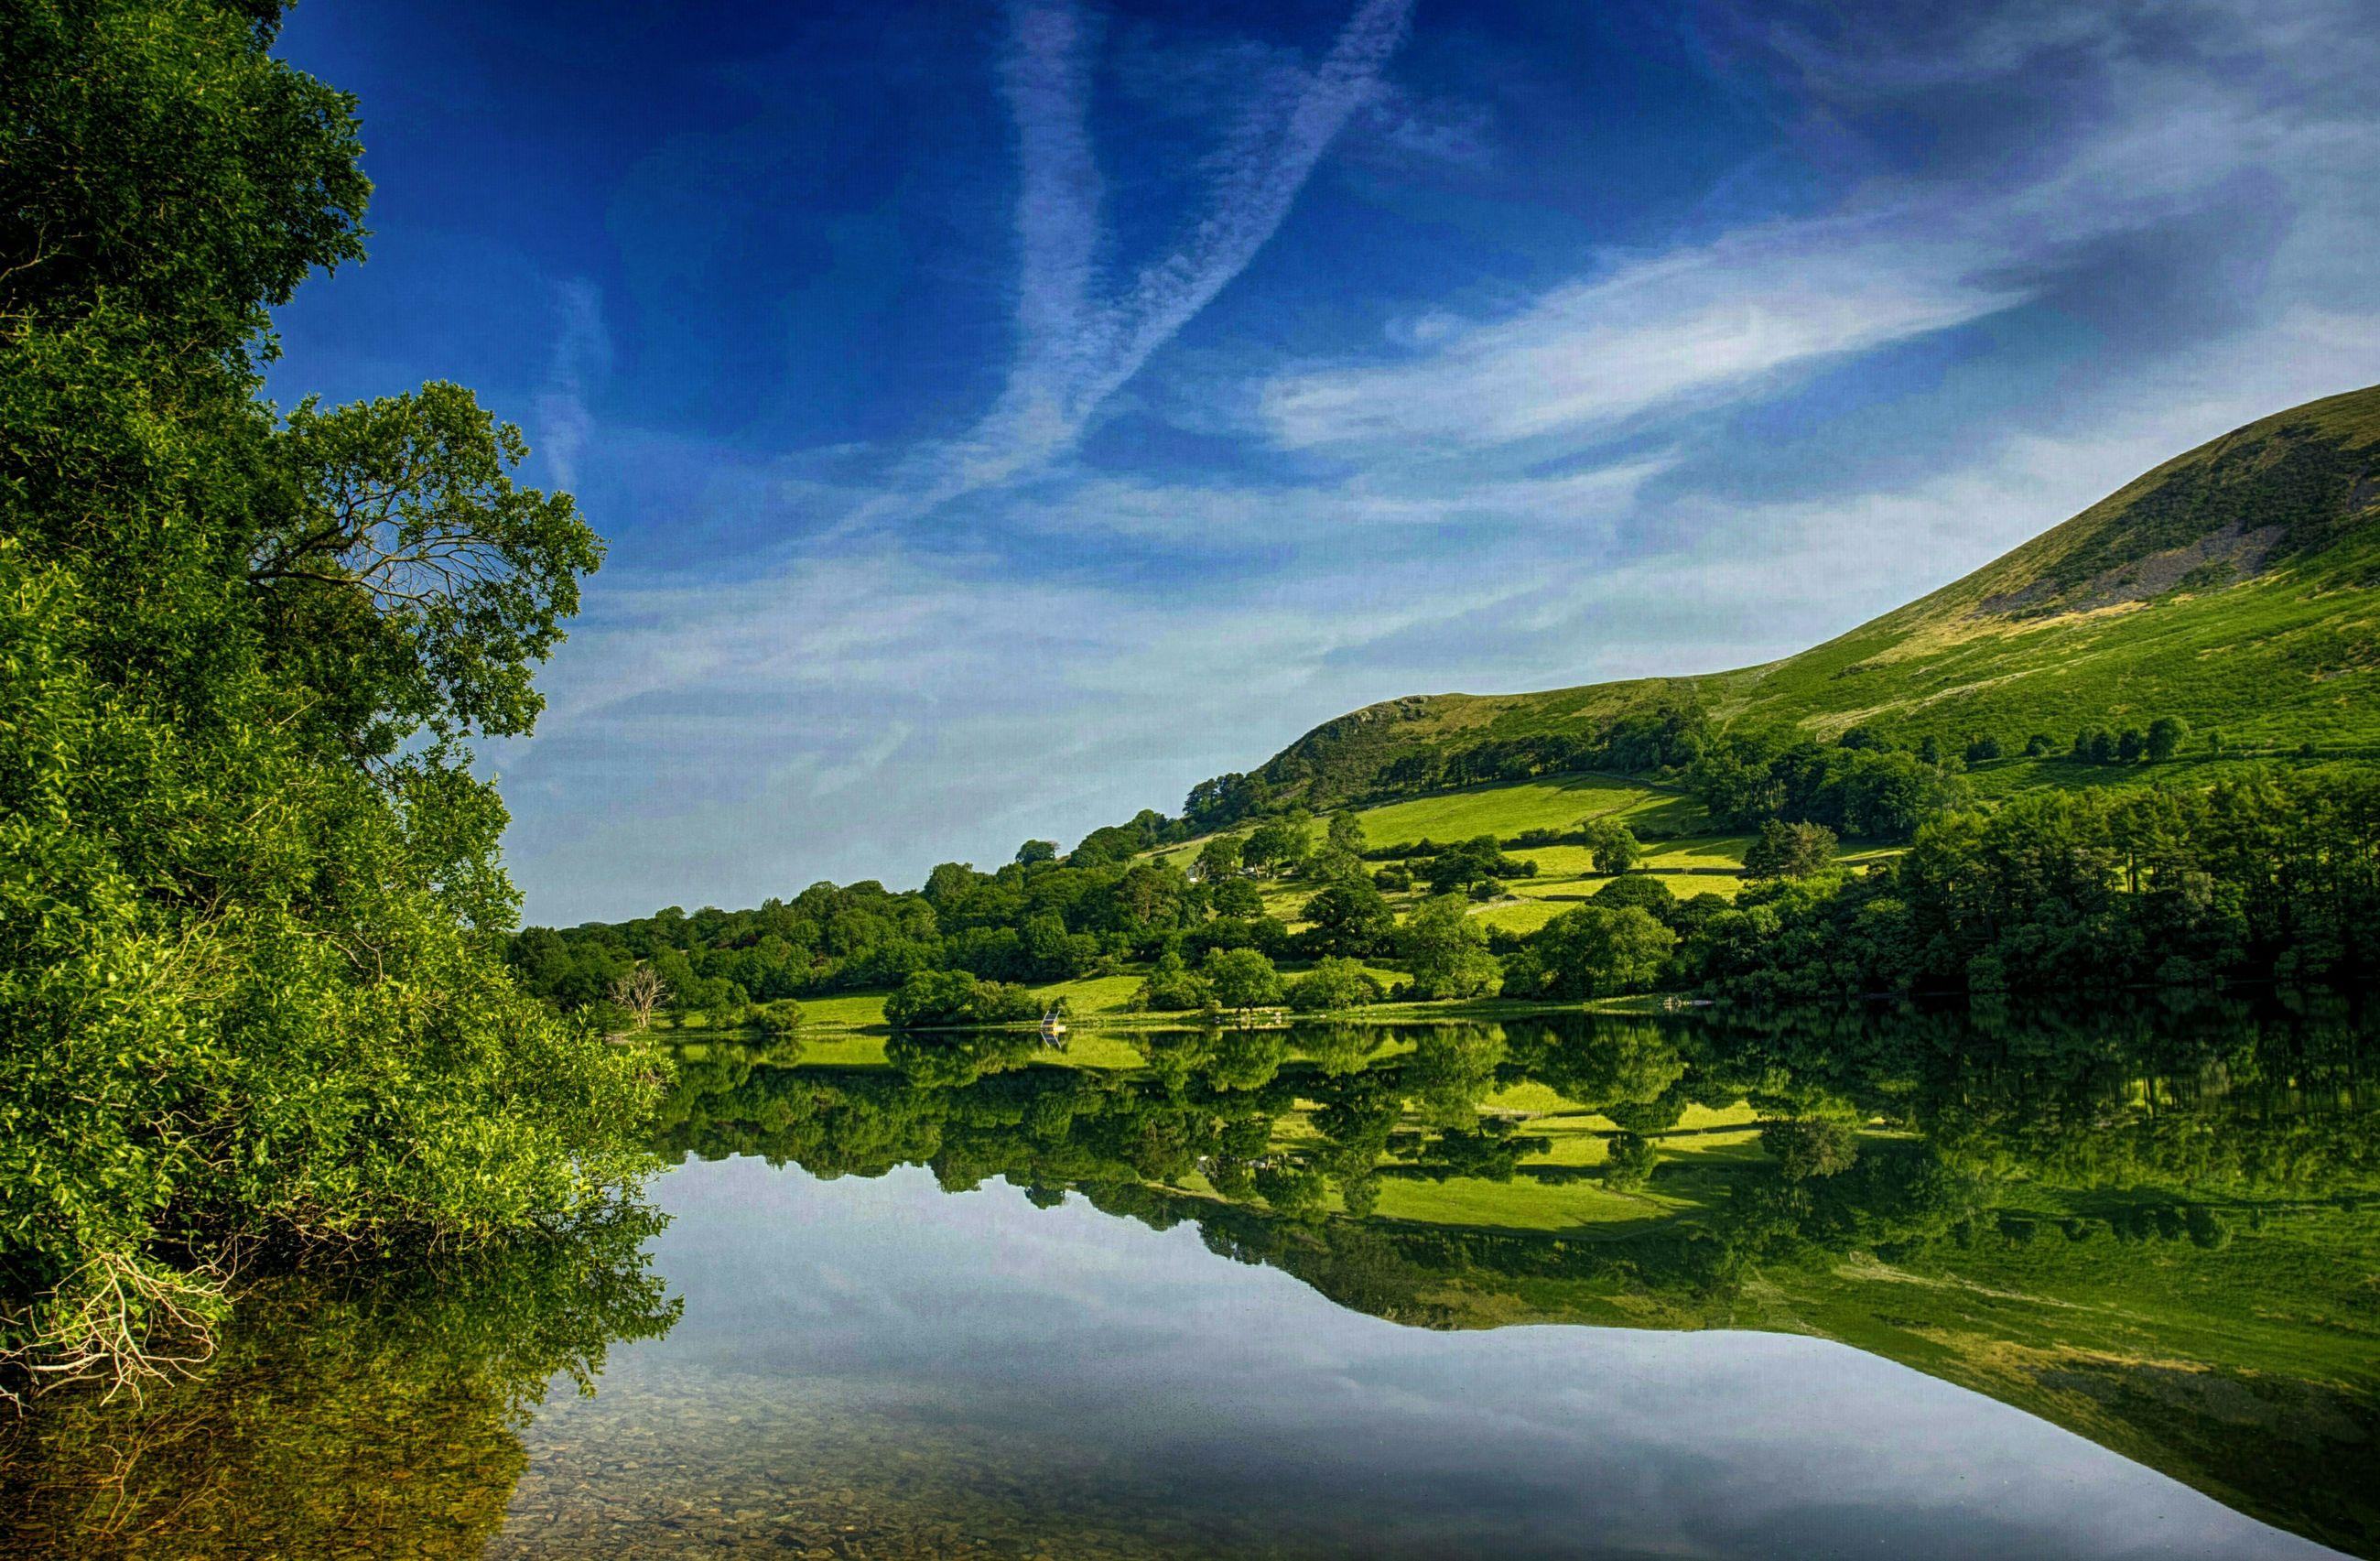 water, tranquil scene, tranquility, scenics, reflection, beauty in nature, sky, tree, lake, mountain, nature, idyllic, waterfront, landscape, river, green color, cloud, countryside, non-urban scene, blue